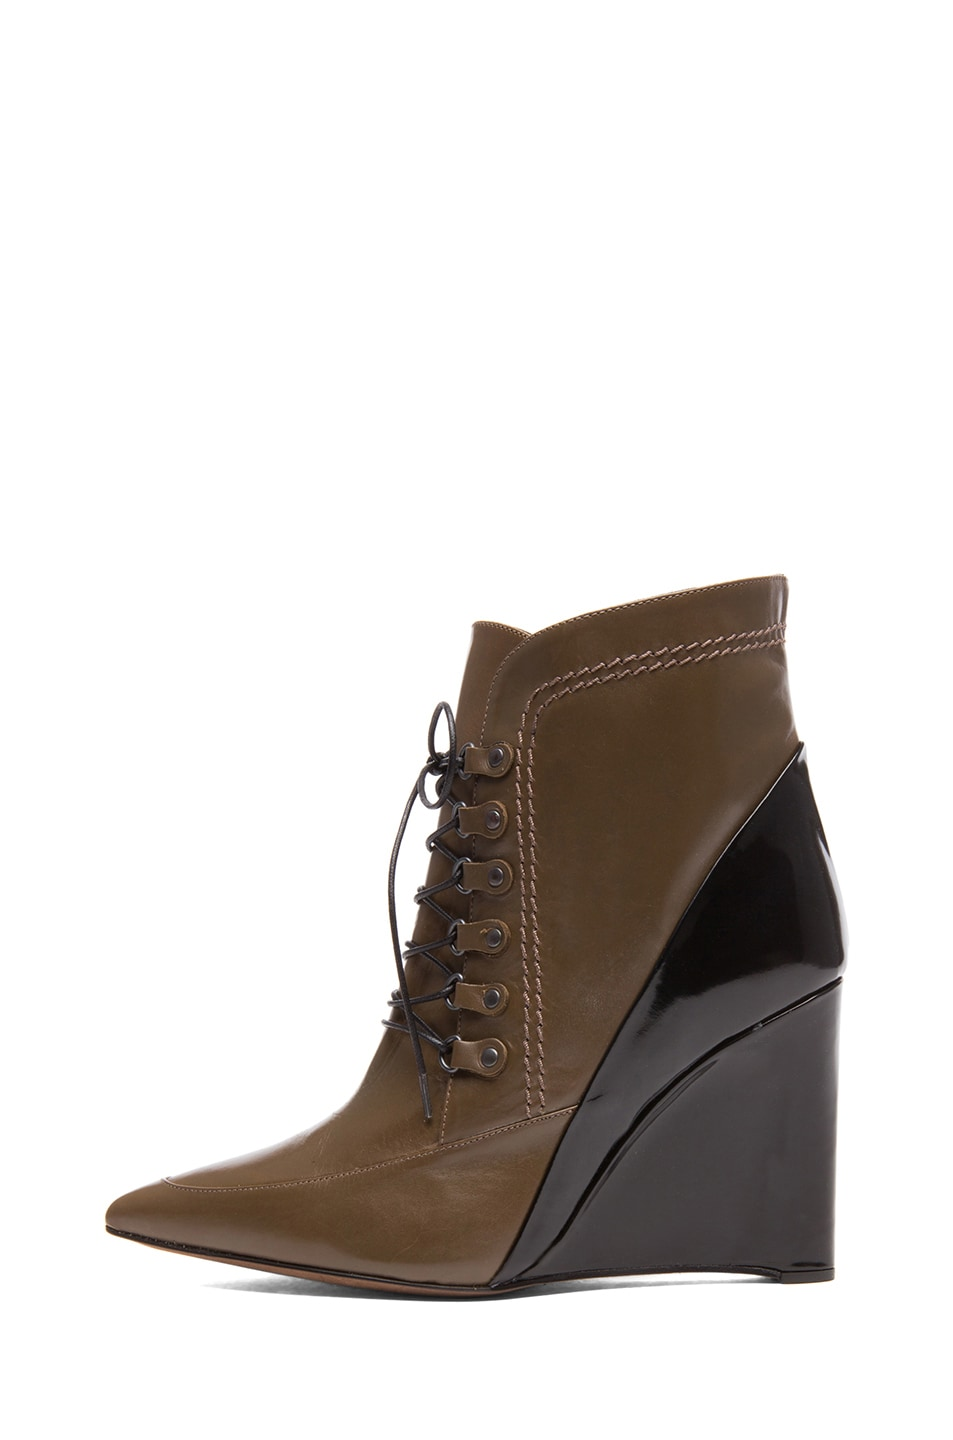 Image 1 of Derek Lam Maxine Calfskin Leather Pointy Toe Ankle Boots in Doe & Black